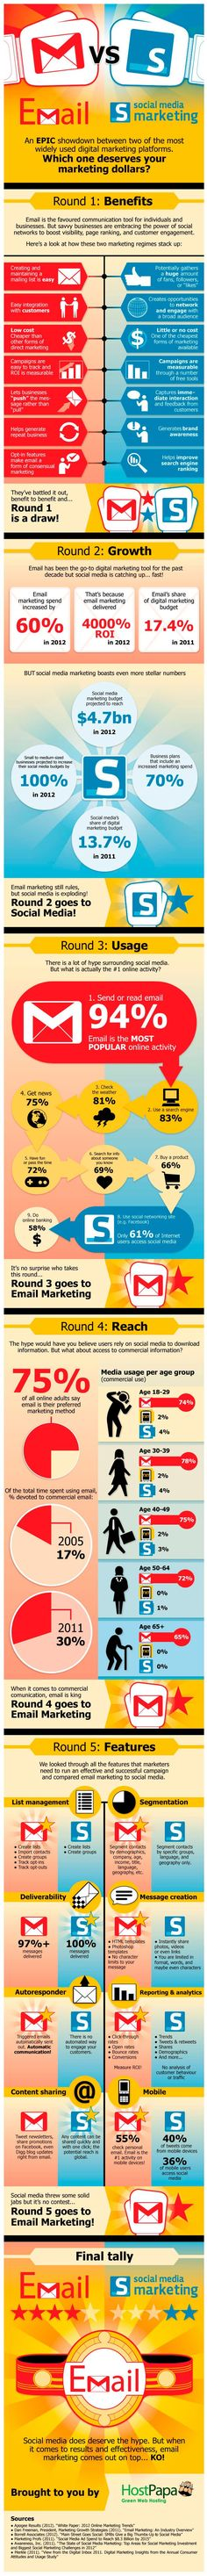 Email vs Social Media Marketing